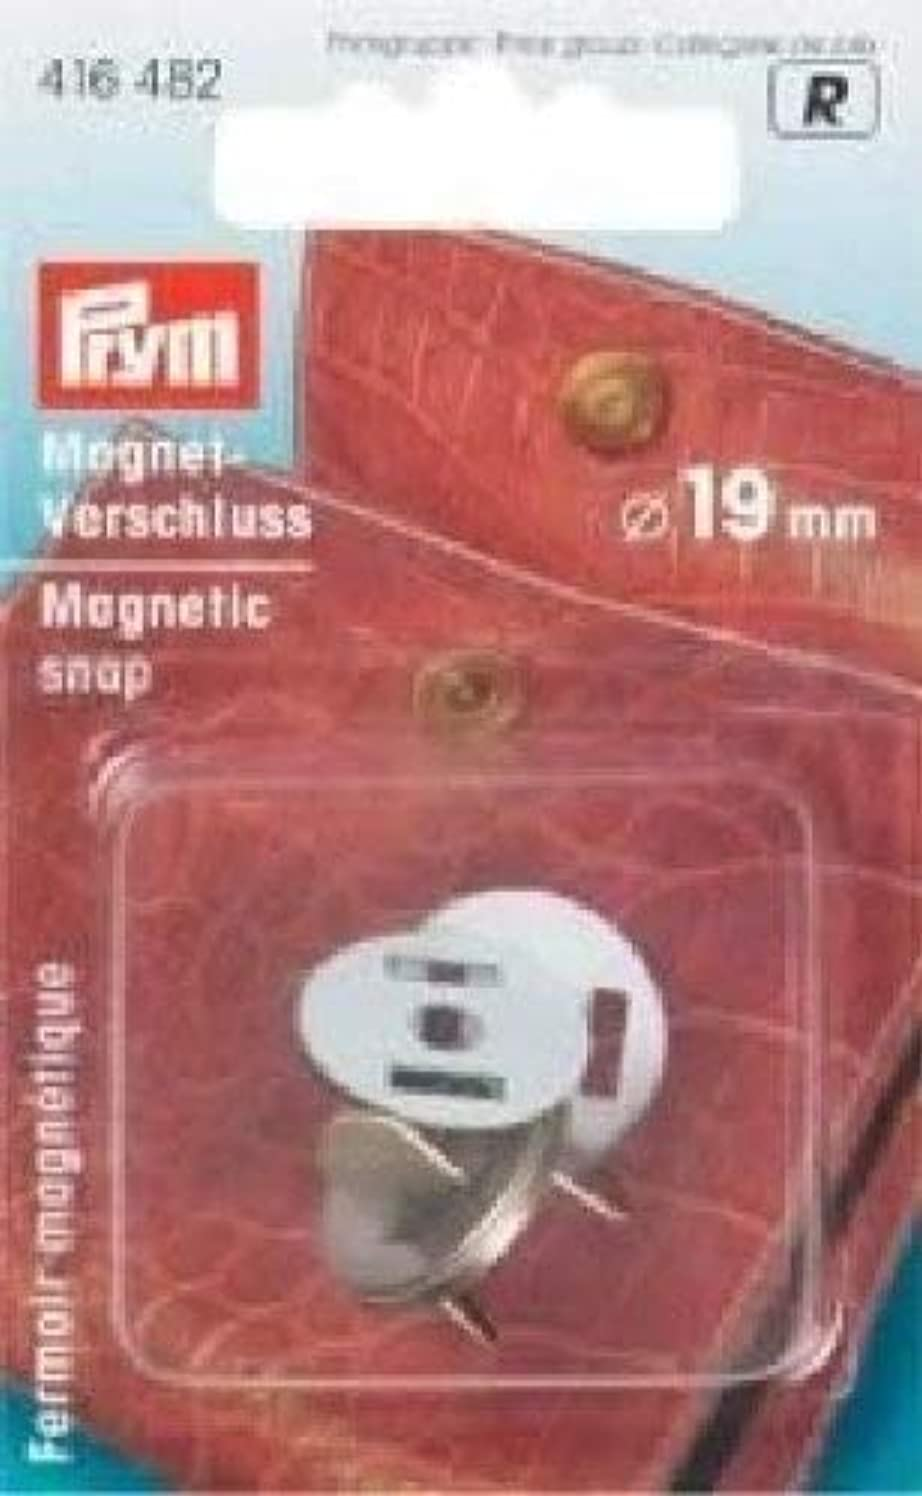 PRYM 416482 Magnetic snap Size 19mm antique brass, 1 piece